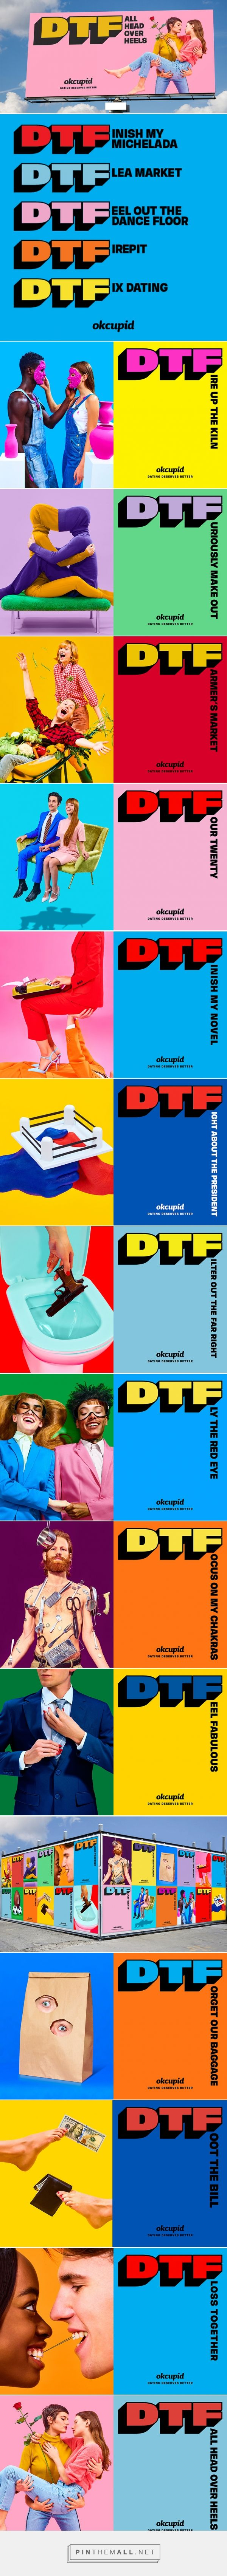 OkCupid Redefines 'DTF' in Striking Ads That Are Like Little Works